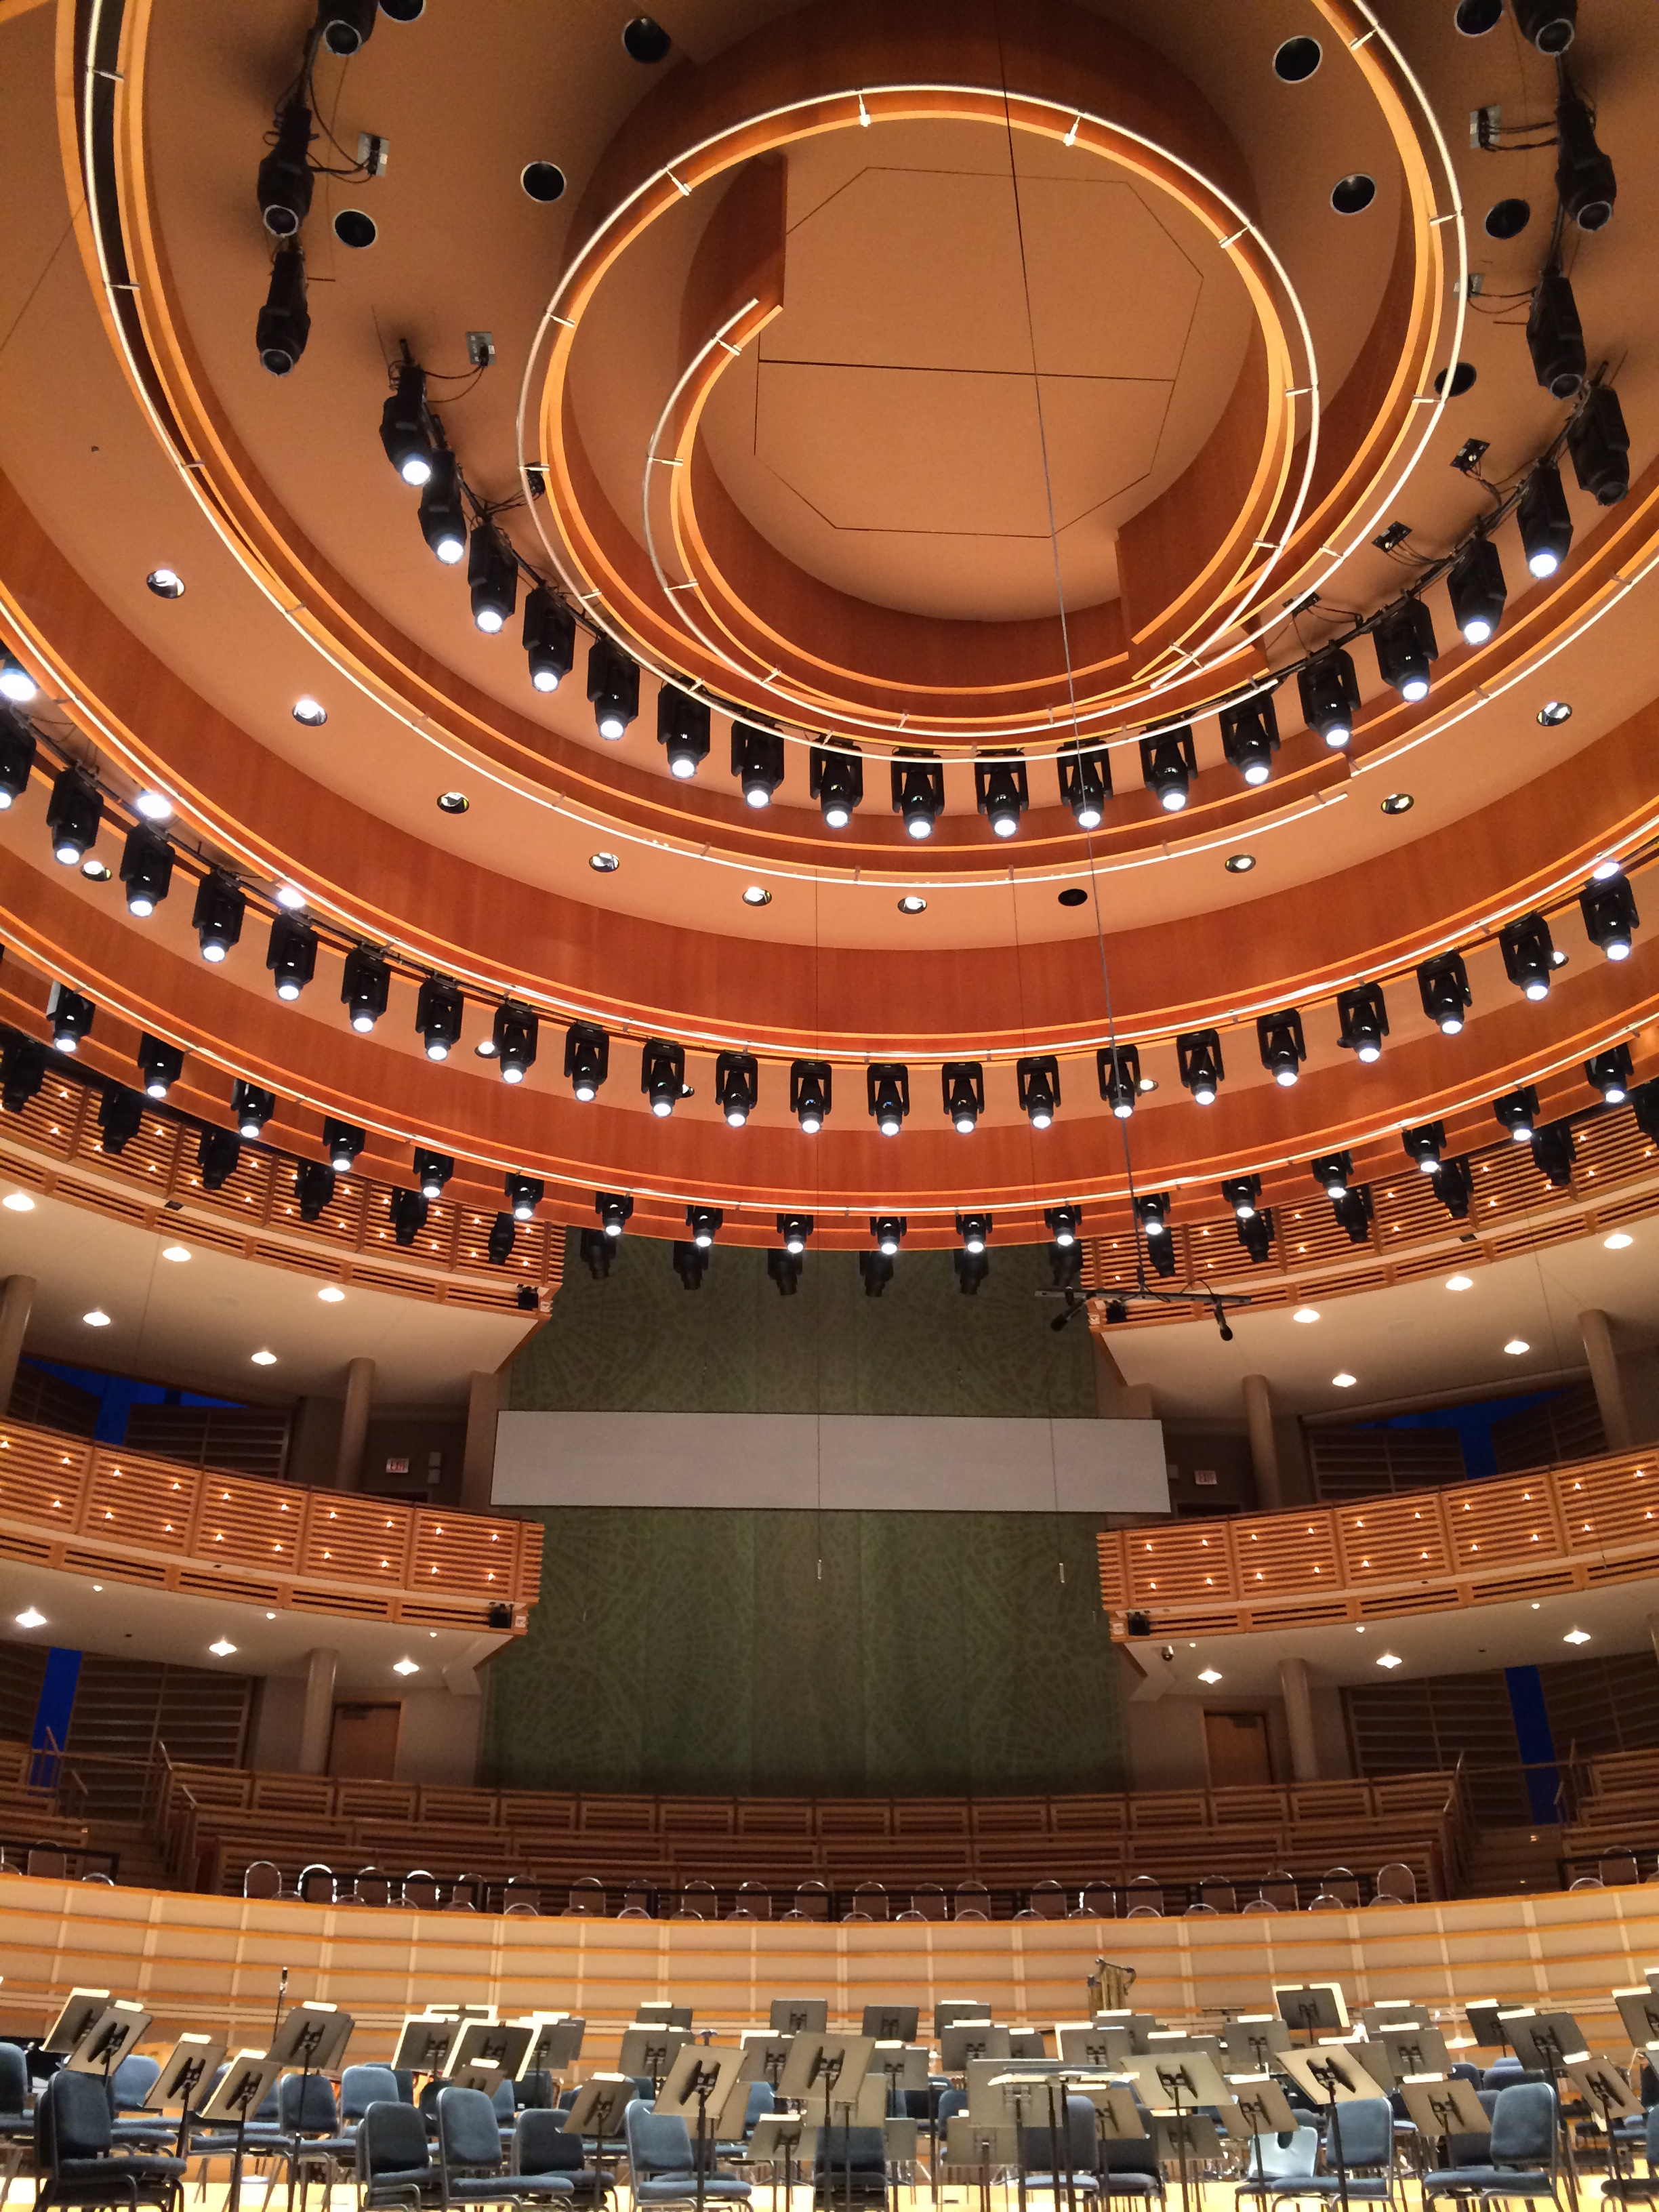 Knight Concert Hall at the Adrienne Arsht Center for the Performing Arts